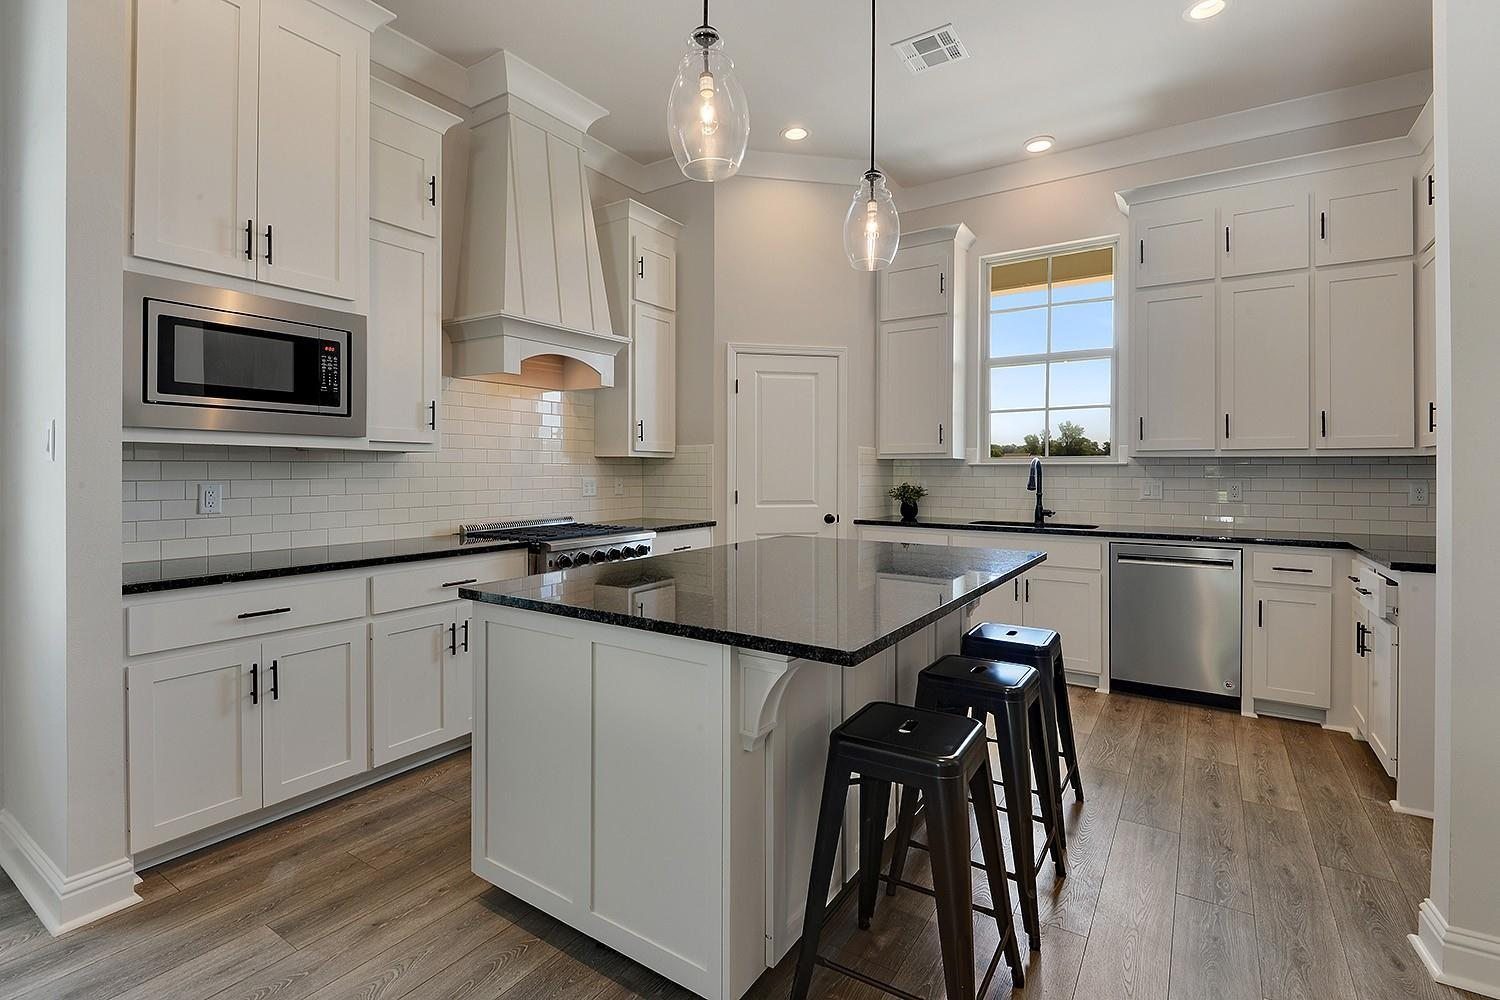 Kitchen featured in the Savoy II By Willie & Willie  in Baton Rouge, LA